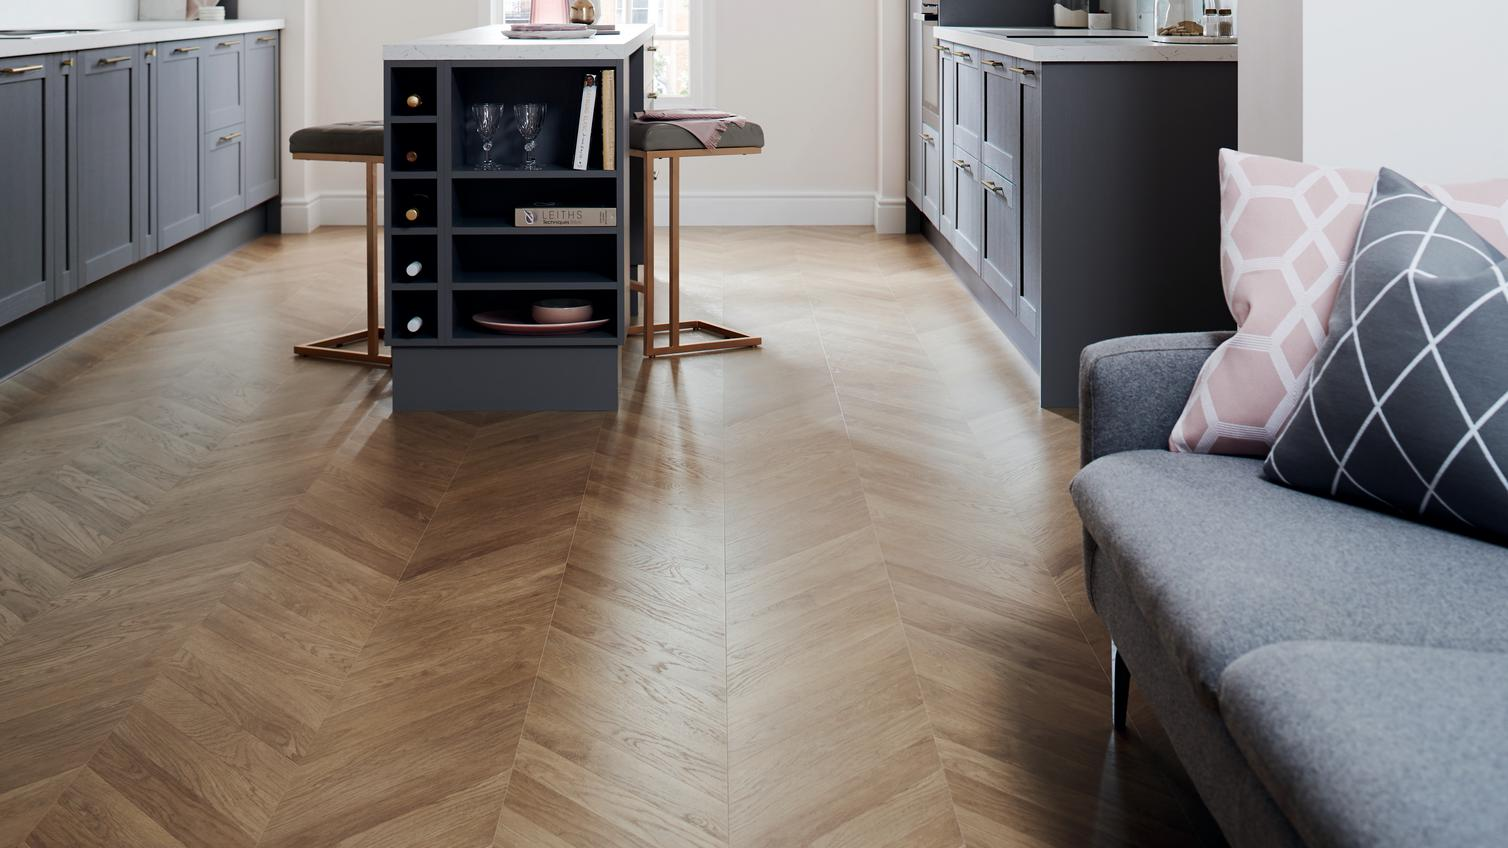 Which Flooring Possibility Works for Your Storage?